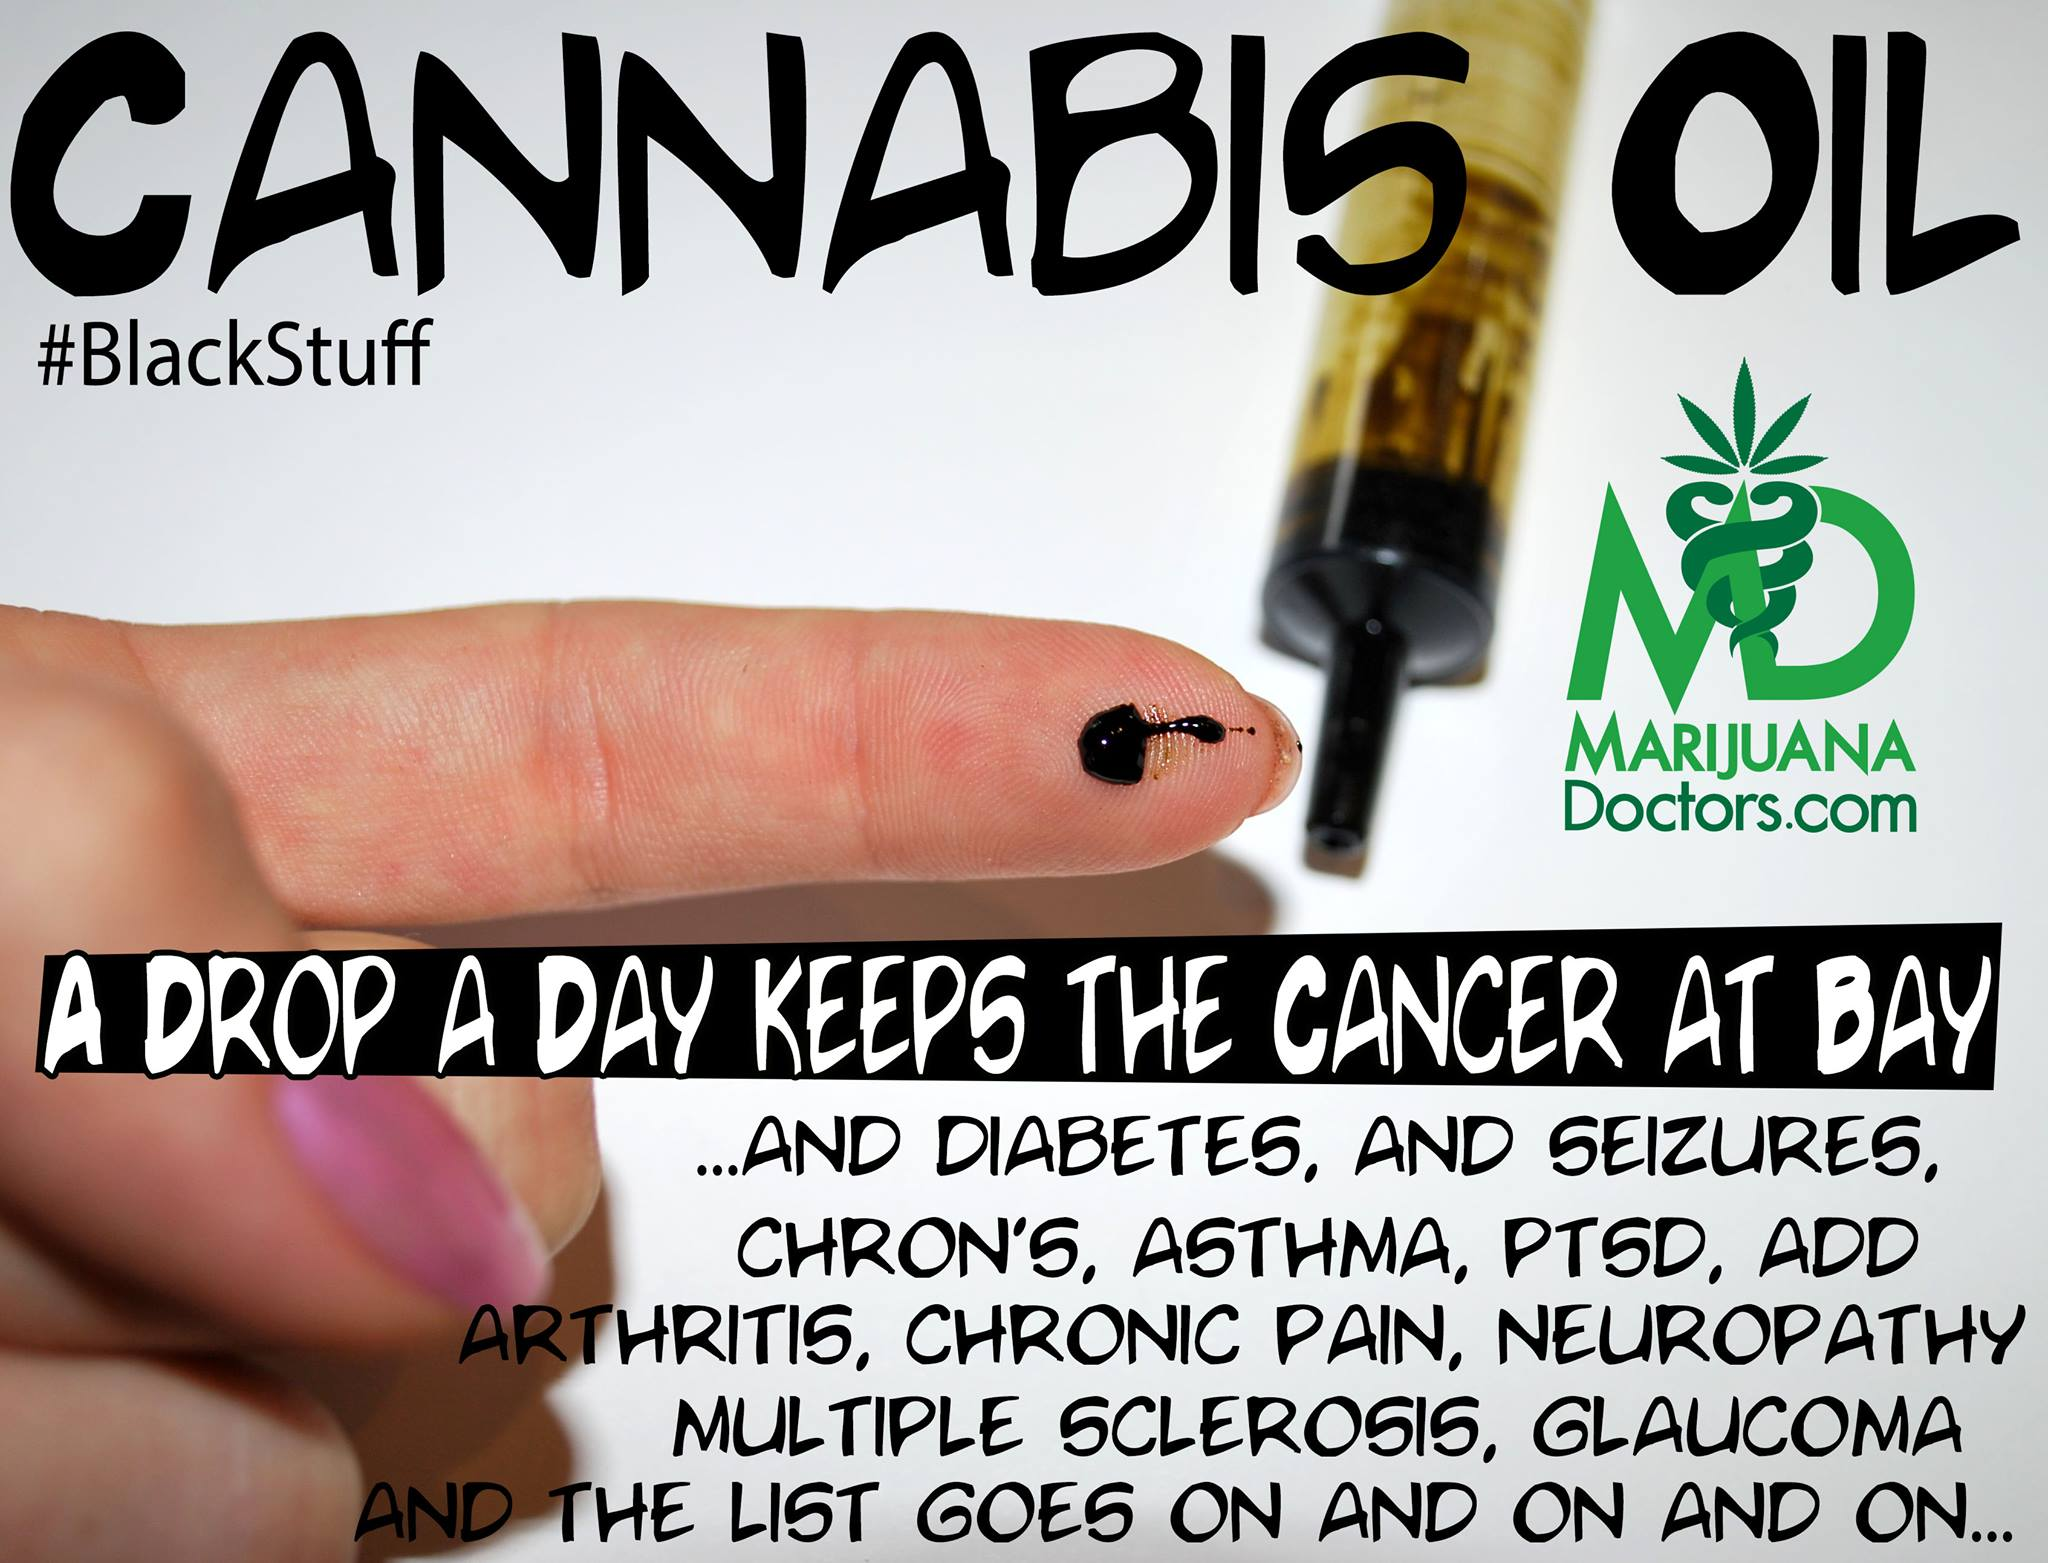 Cannabis Oil As Treatment For Cancer And Other Diseases